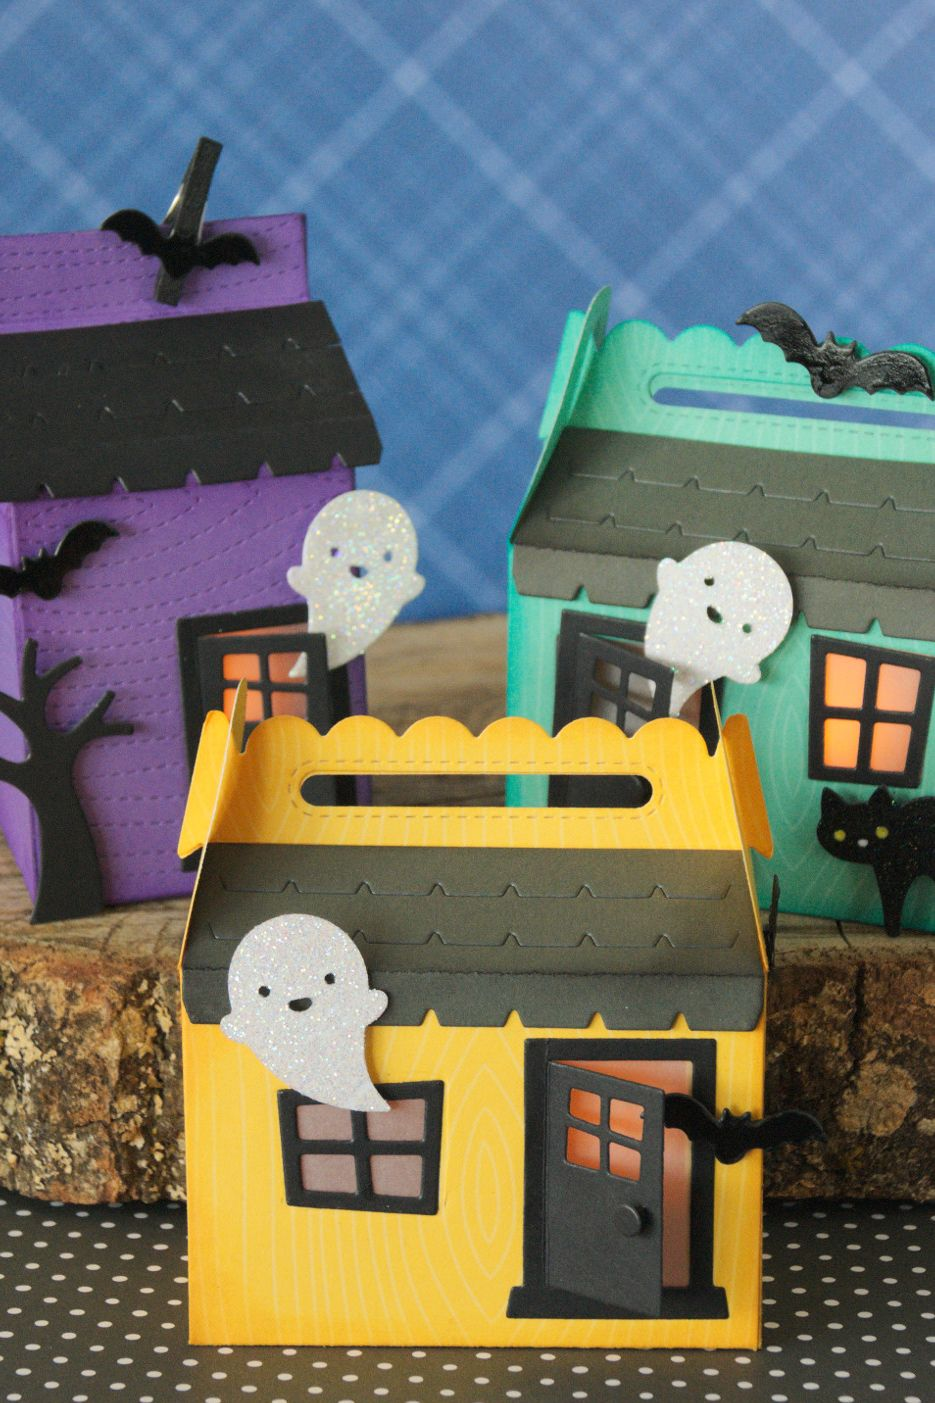 If you've ever visited arts & crafts events, there is no way you've failed to witness the beauty in the craft. 46 Easy Halloween Crafts For Kids Fun Diy Halloween Decorations For Kids To Make